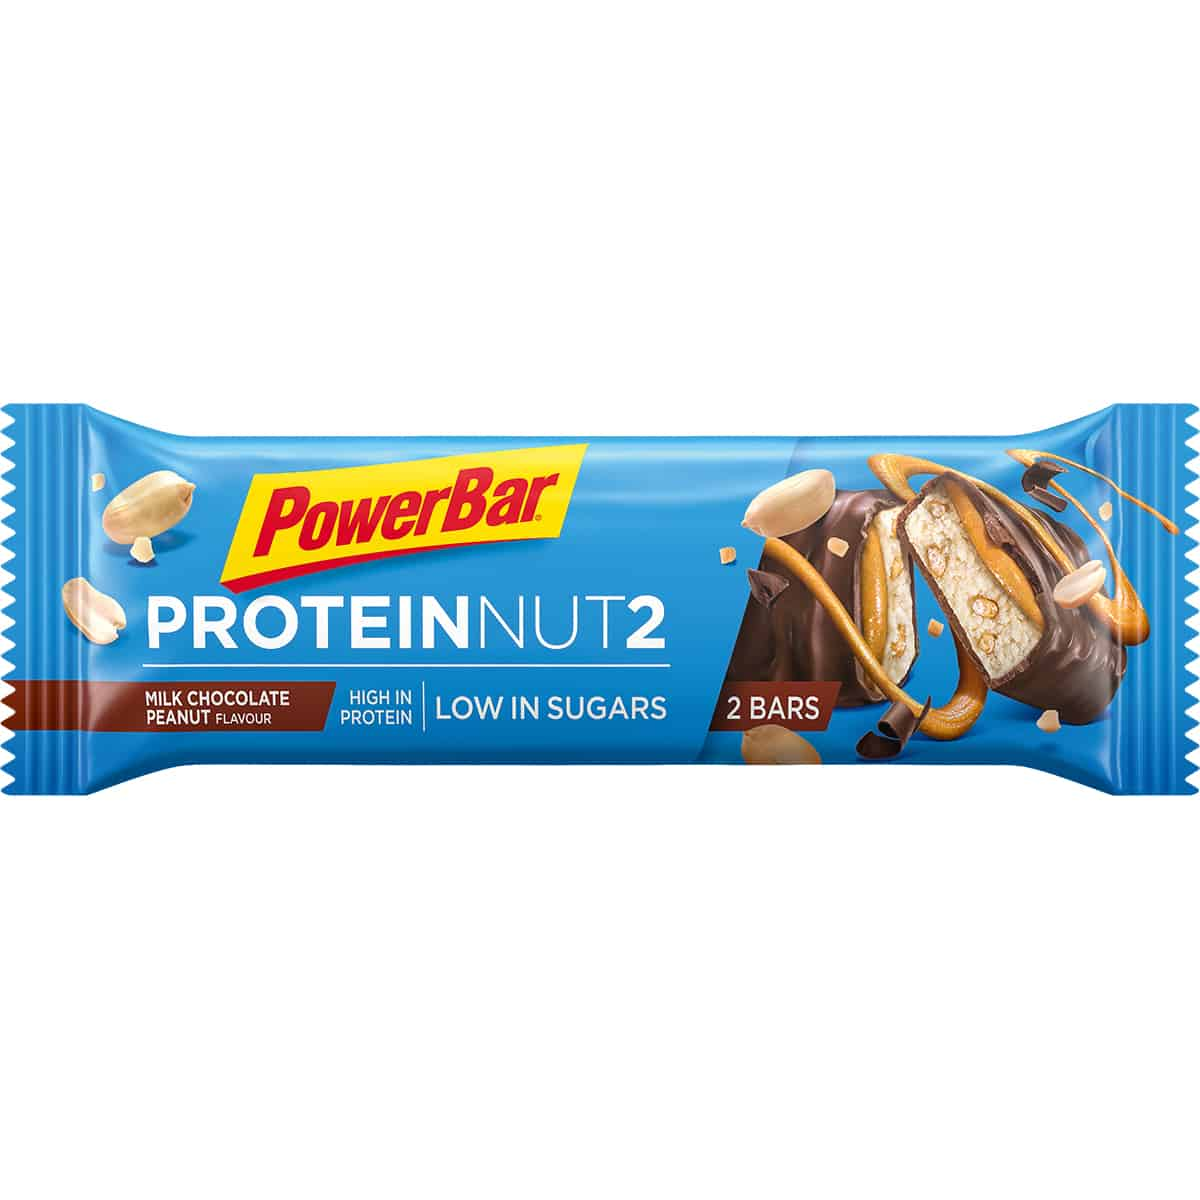 ProteinNut2 Milk Chocolate Peanut 45g